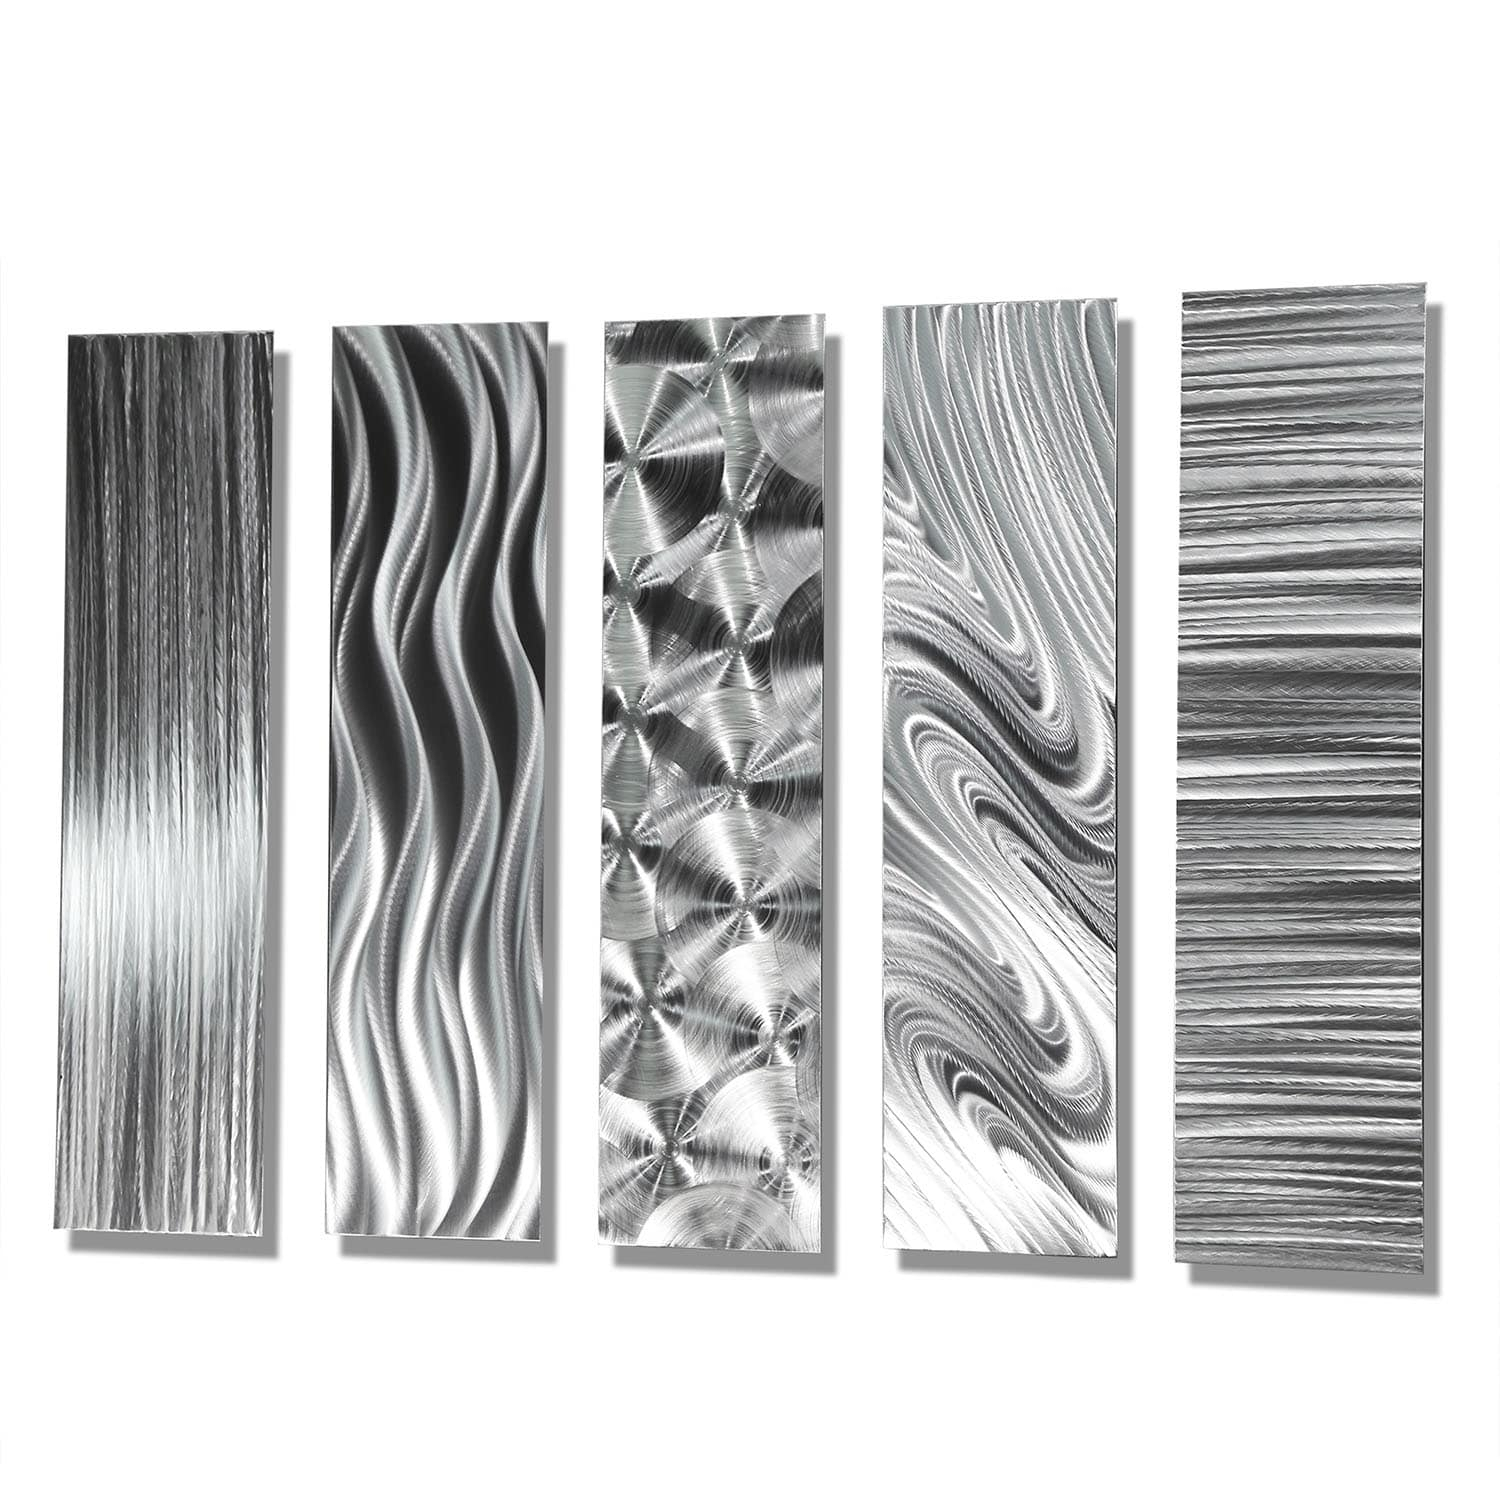 Statements2000 Set Of 5 Silver Metal Wall Art Accentsjon Allen For Newest Wall Art Accents (Gallery 14 of 15)